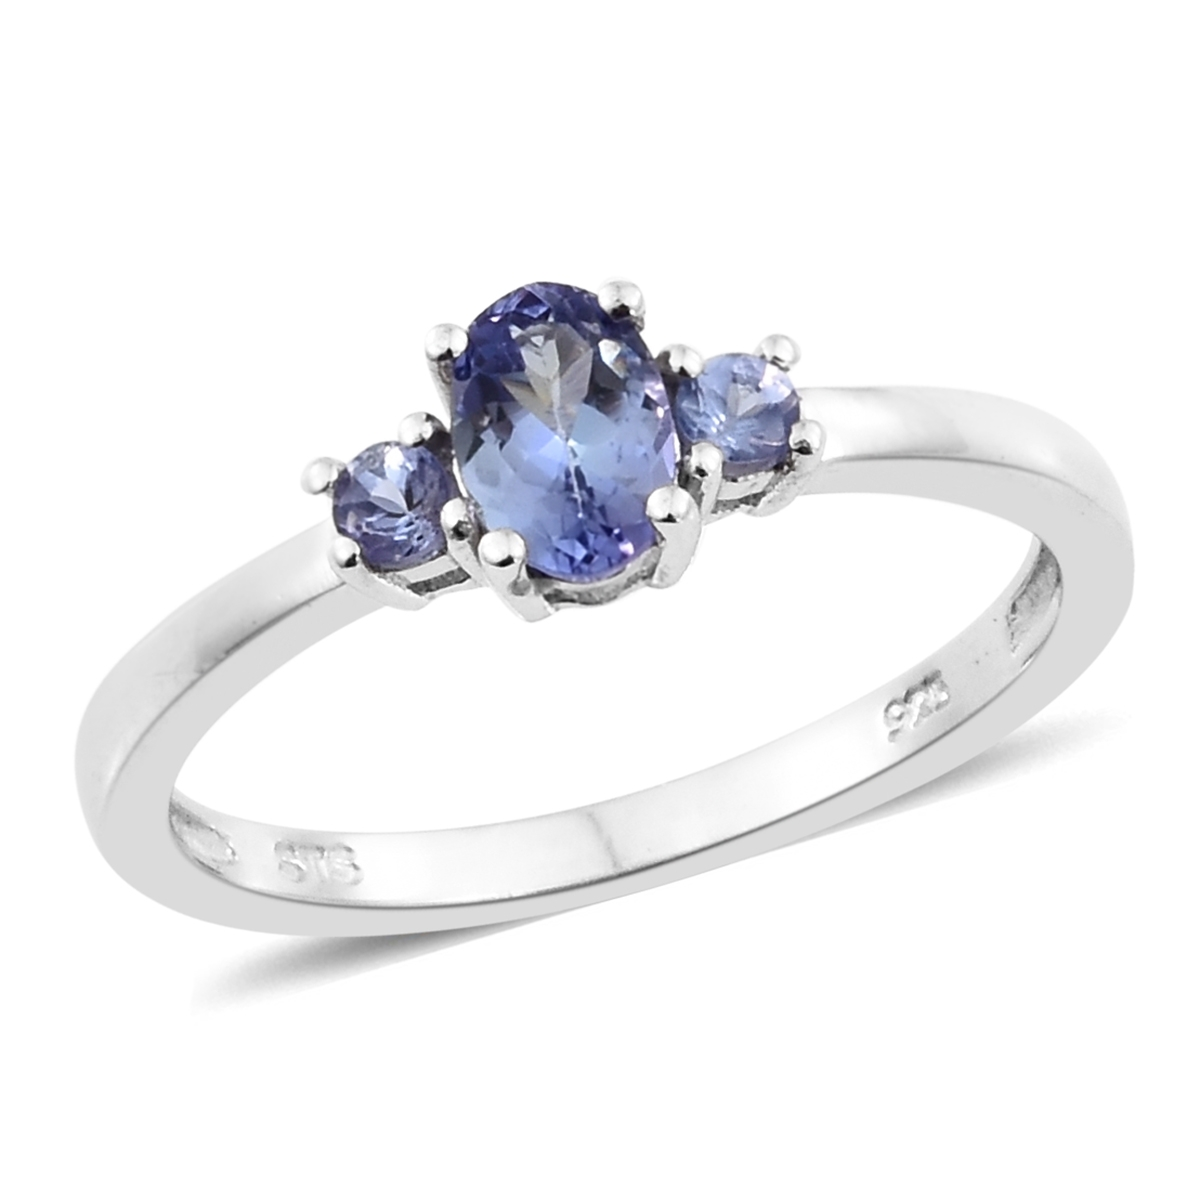 peacock image colored m and gemstones cushion jewelry tanzanite cut untreated diamond s ring sugarloaf estate carats